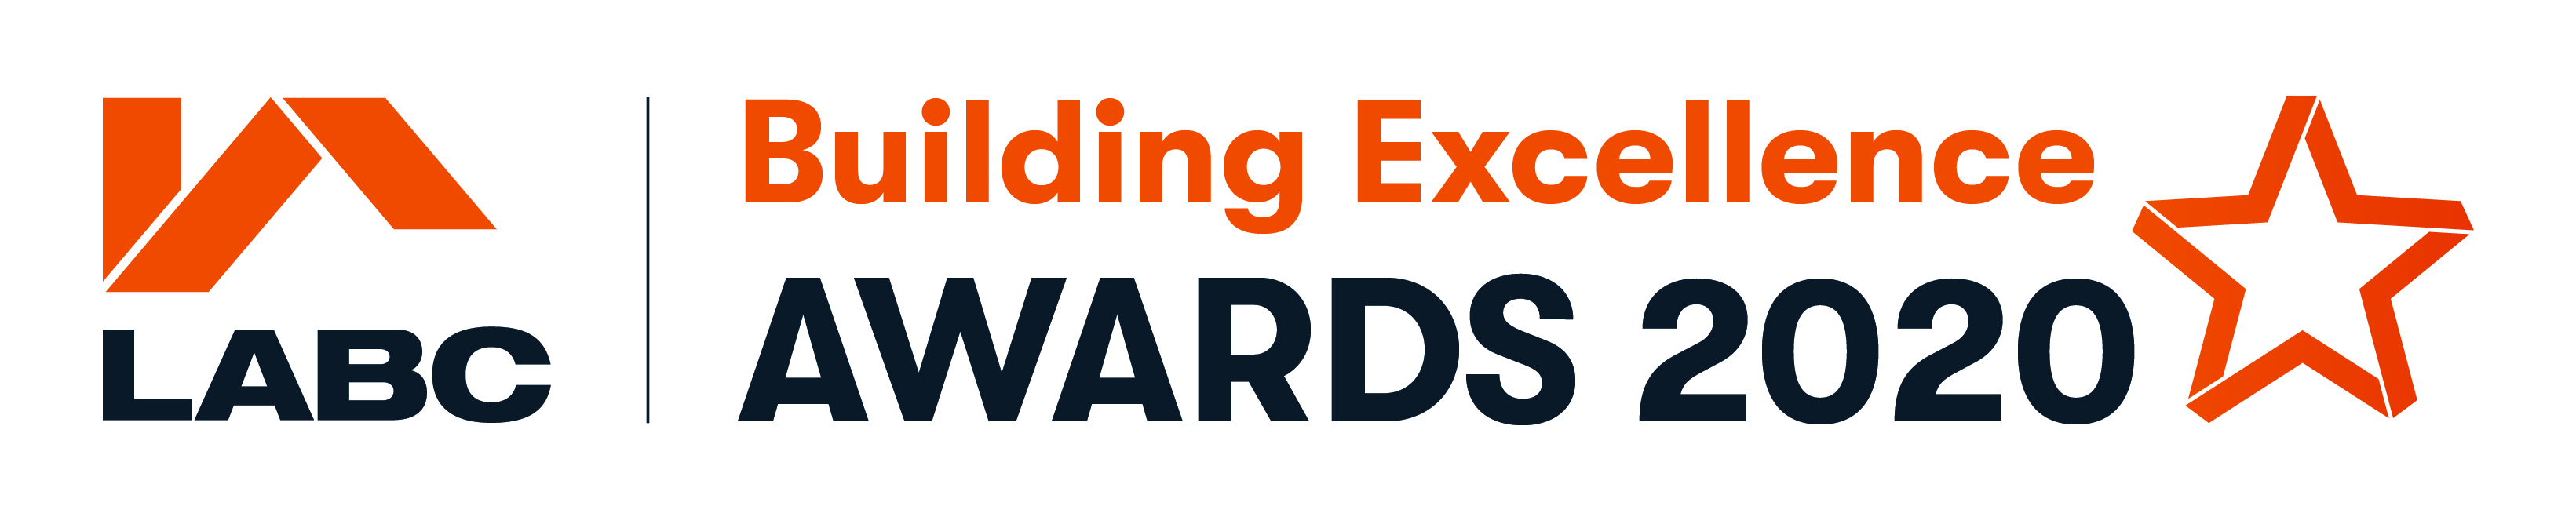 LABC Building Excellence Awards 2020 logo